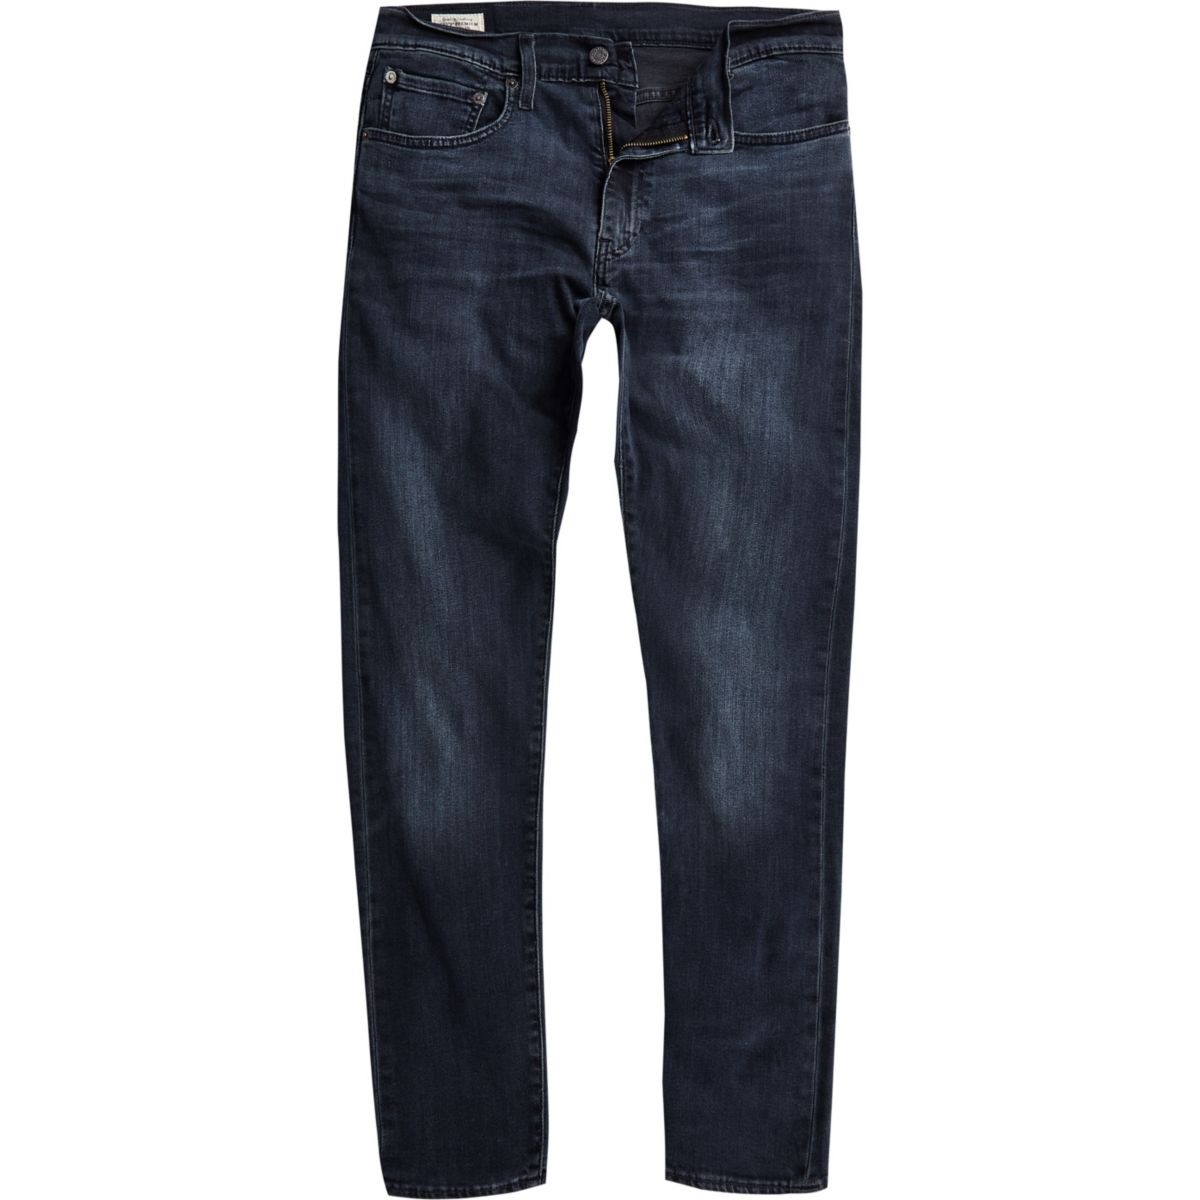 Levi's blue denim 512 slim taper fit jeans